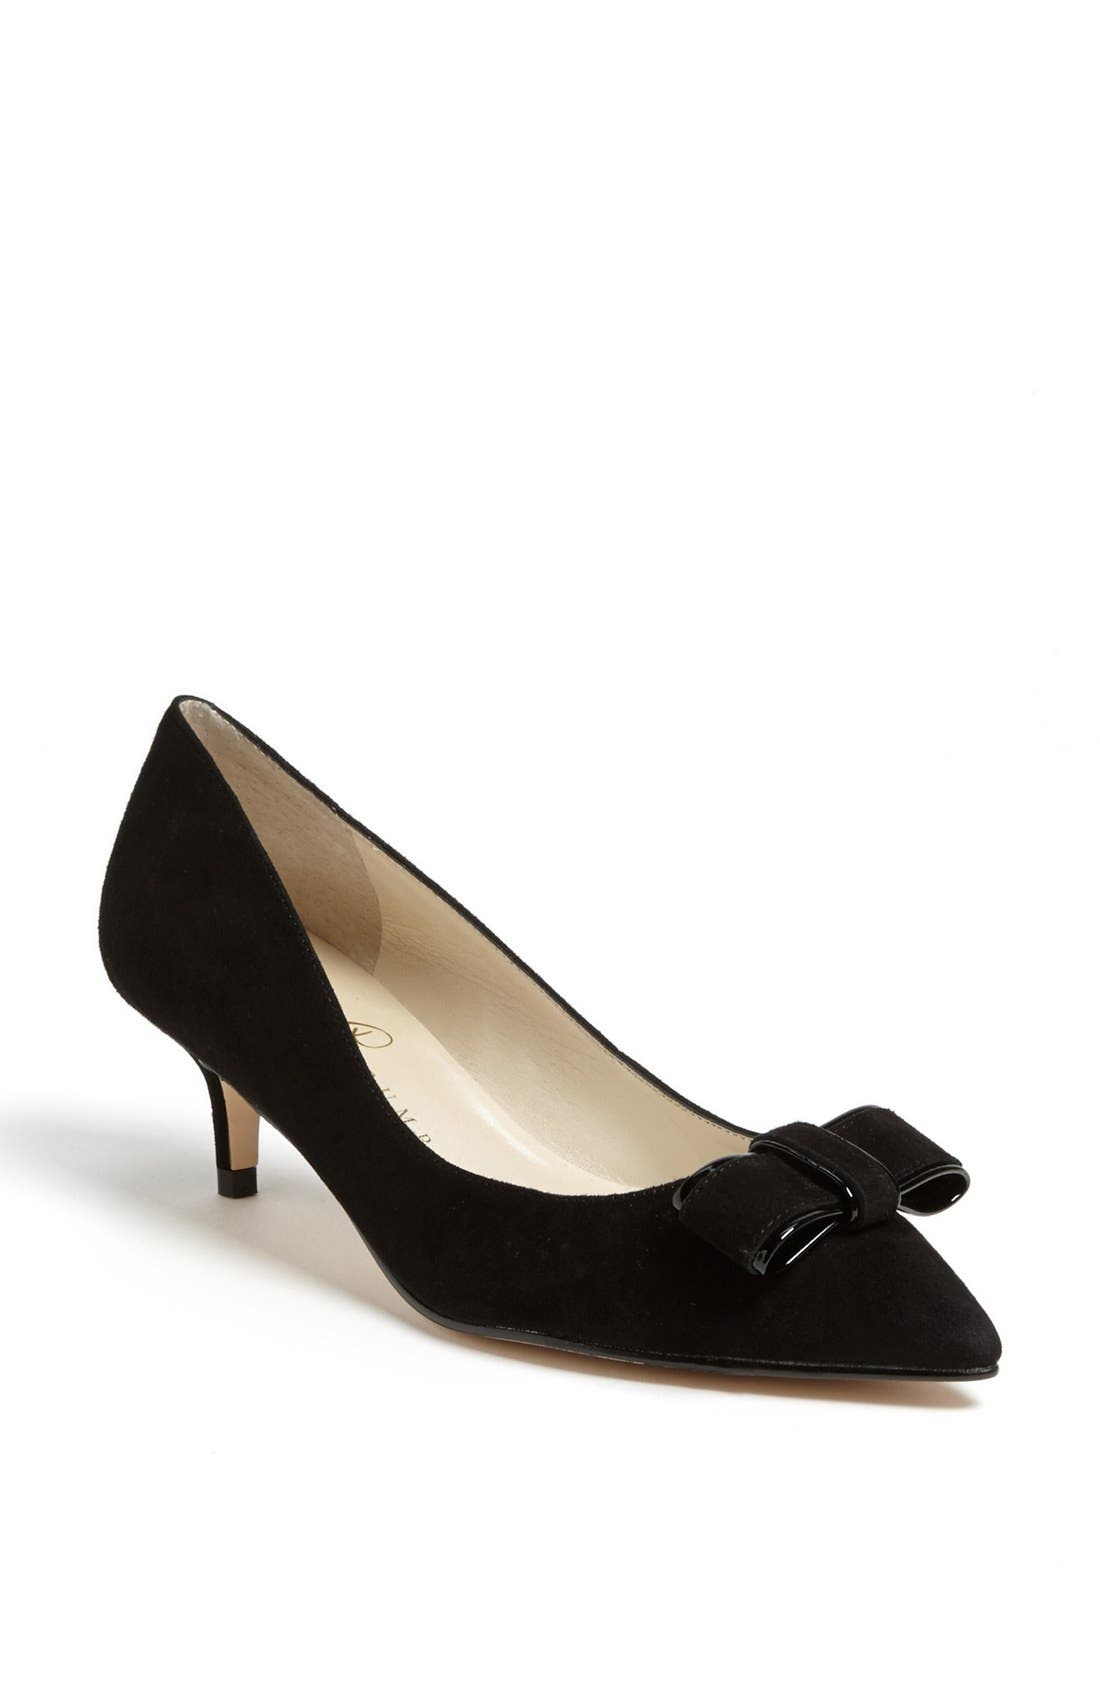 Main Image - IVANKA TRUMP WALKER PUMP